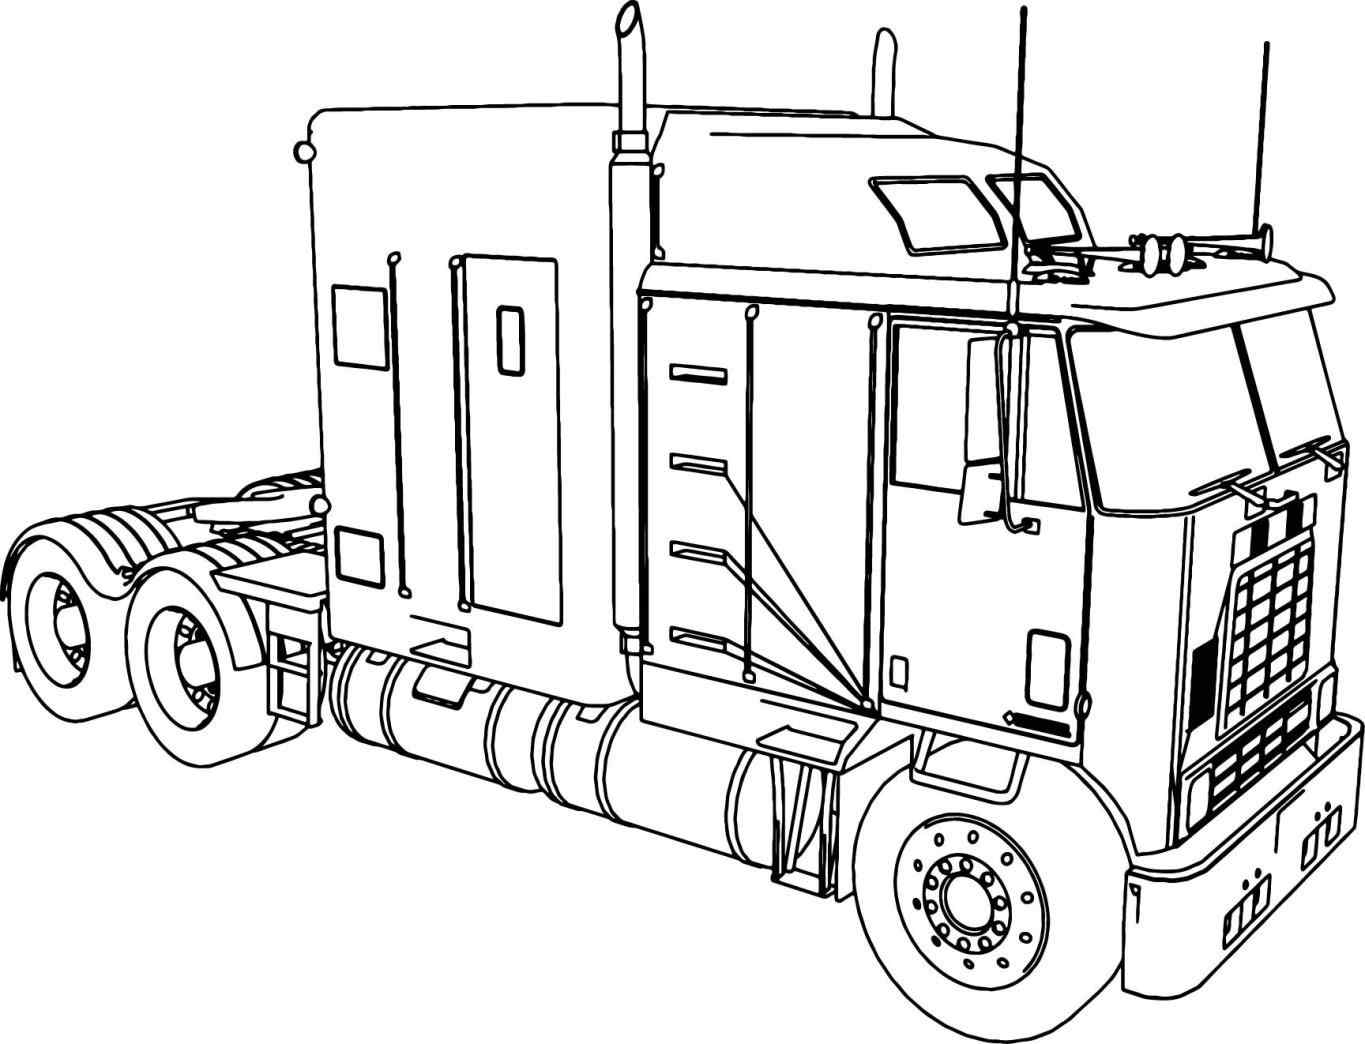 printable dump truck coloring page old dump truck loaded with sand coloring page for kids coloring dump truck page printable